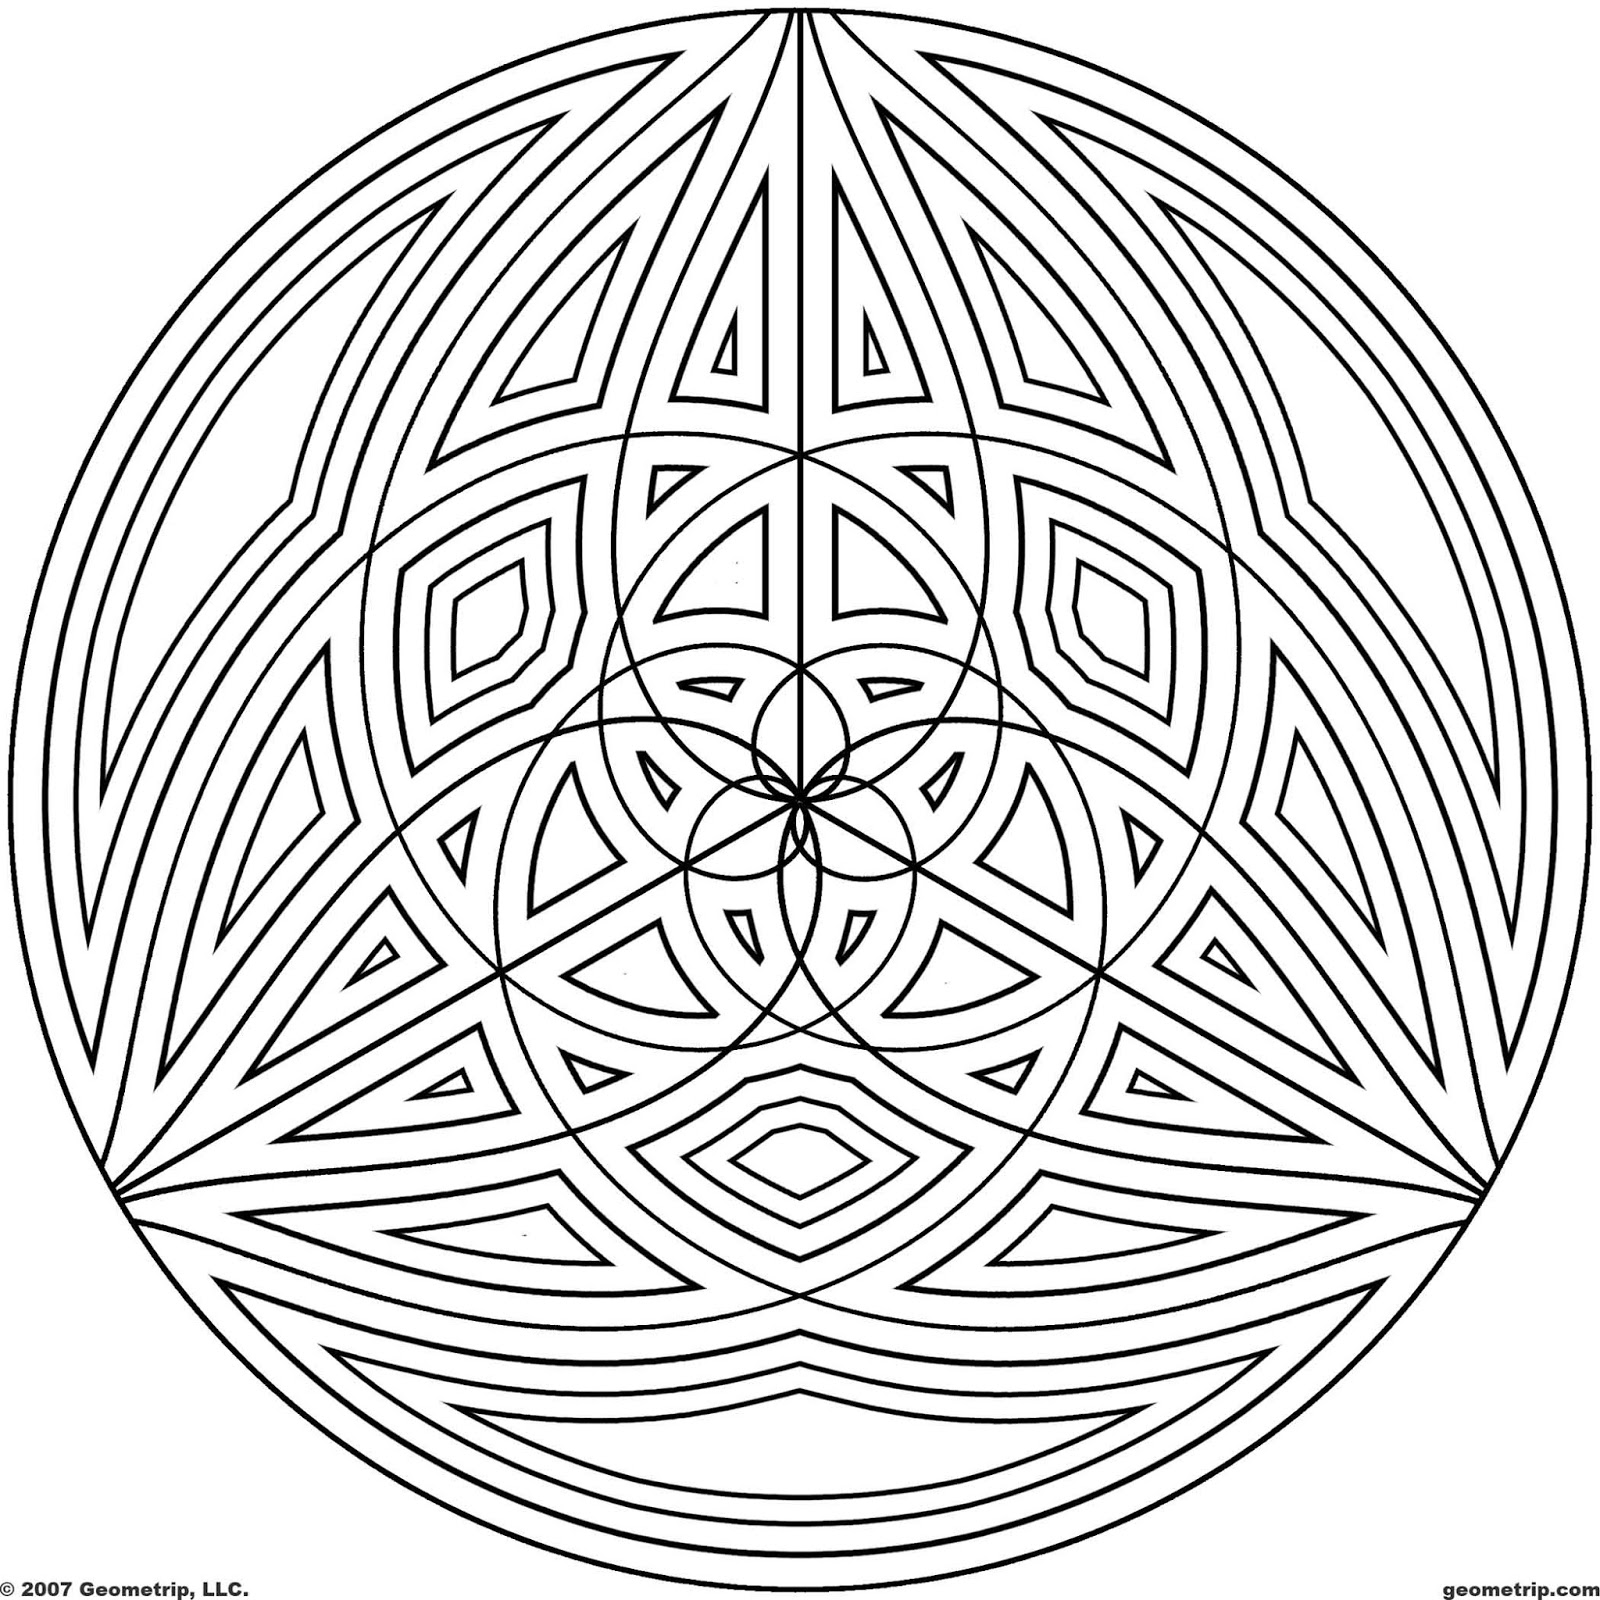 coloring pages cool designs 50 trippy coloring pages pages coloring designs cool